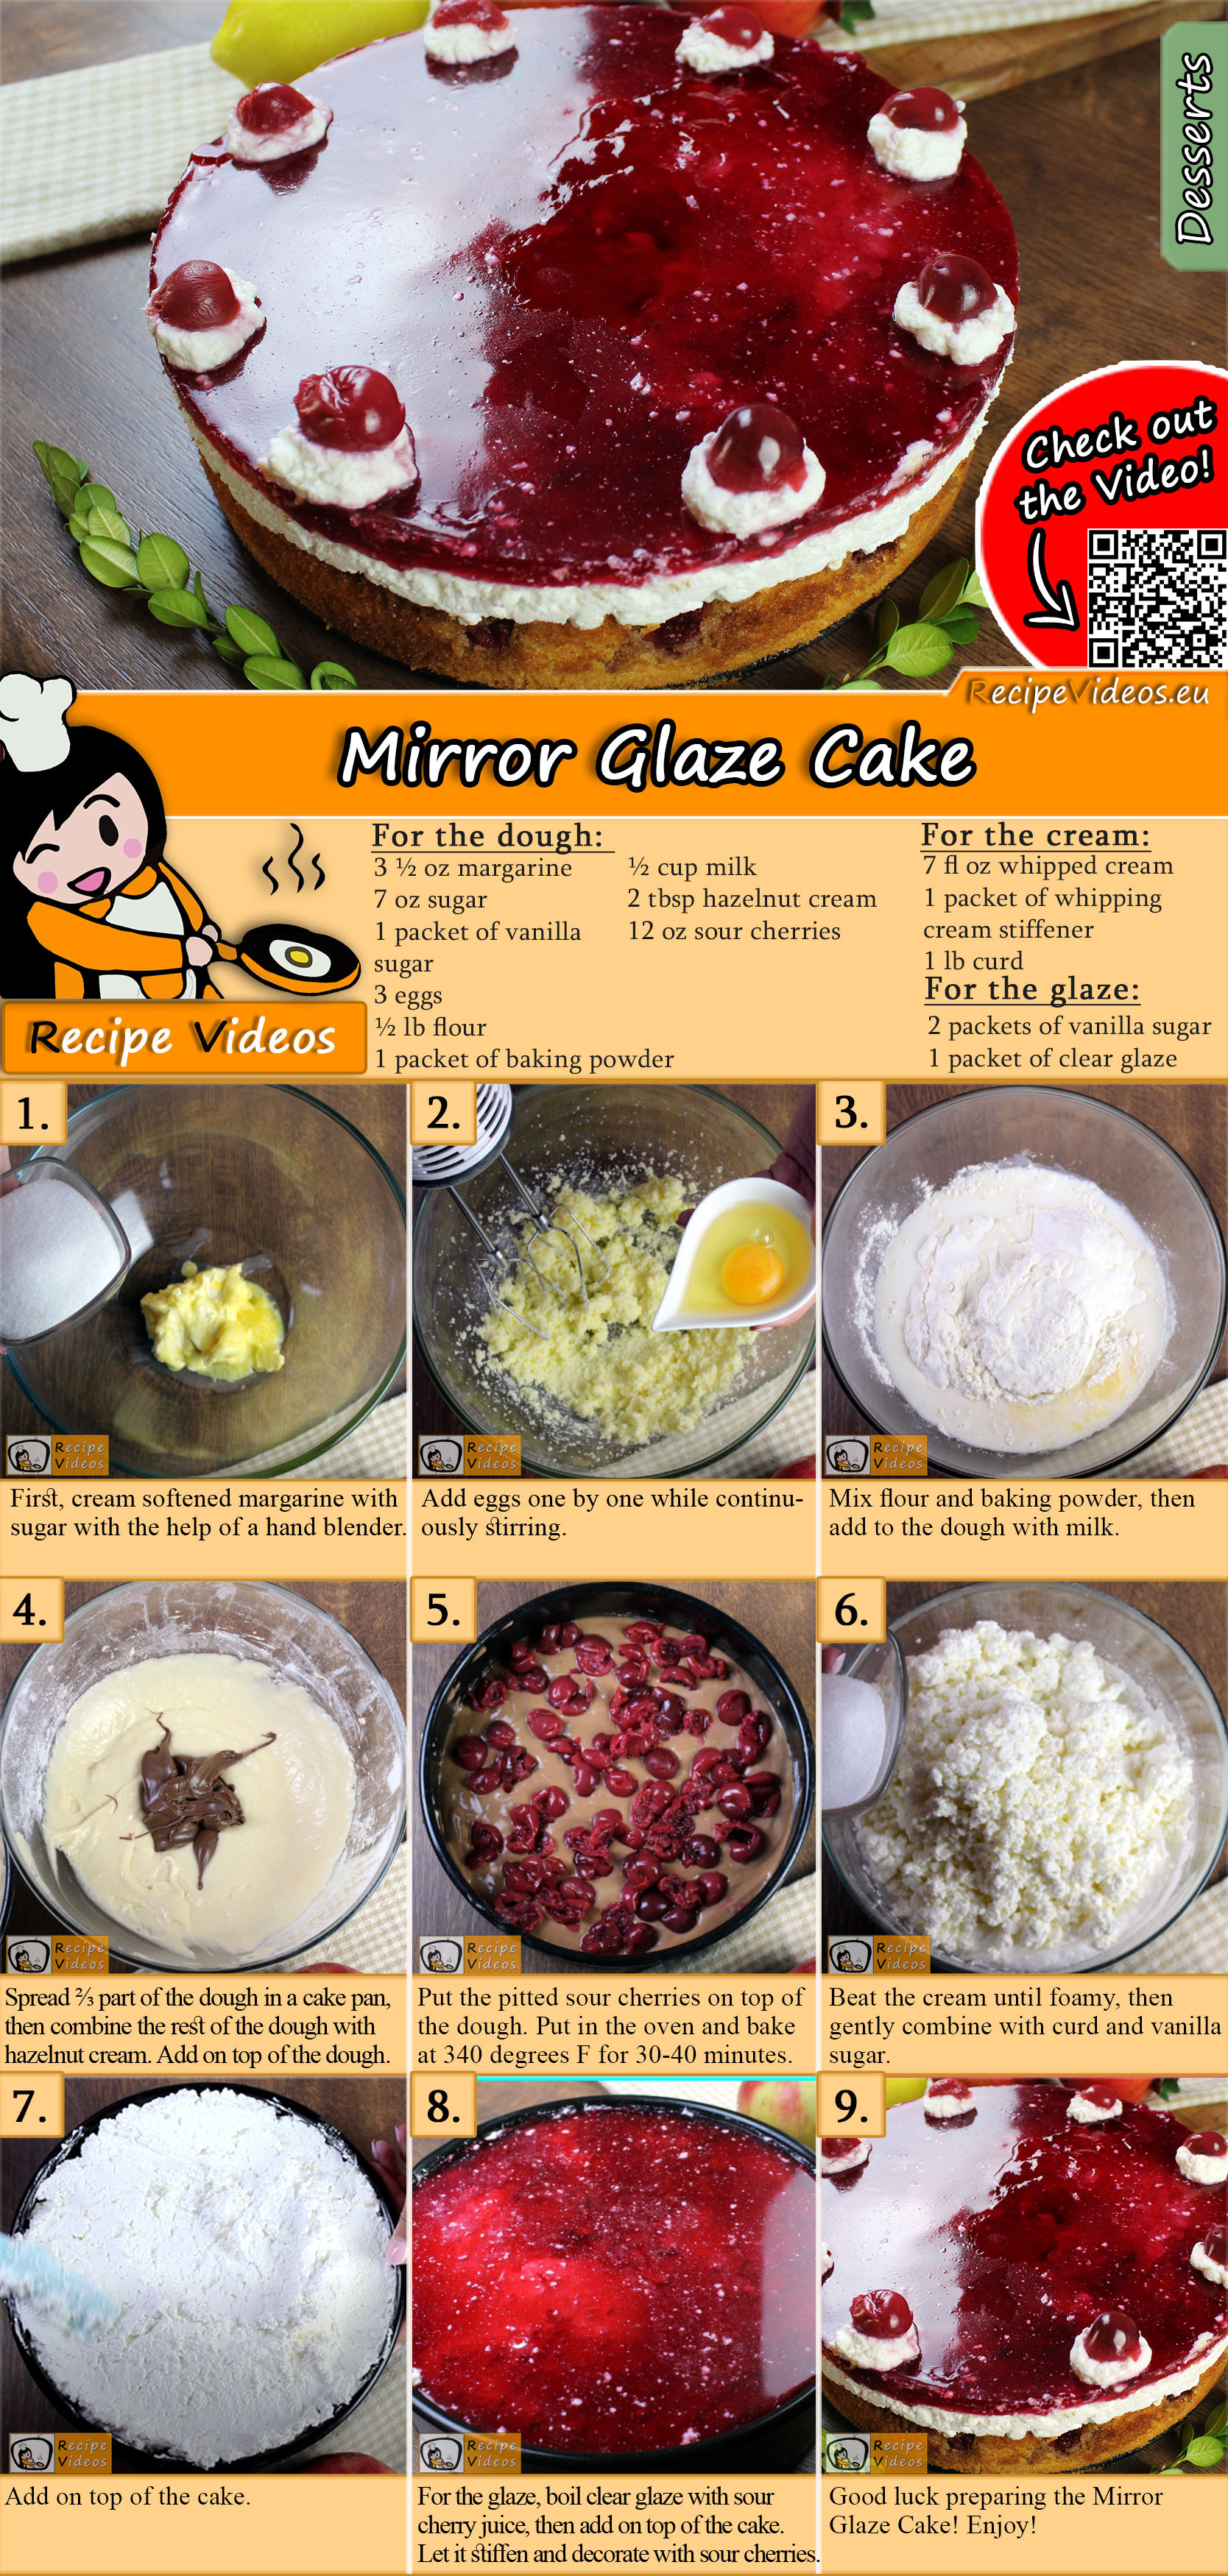 Snow White cake recipe with video